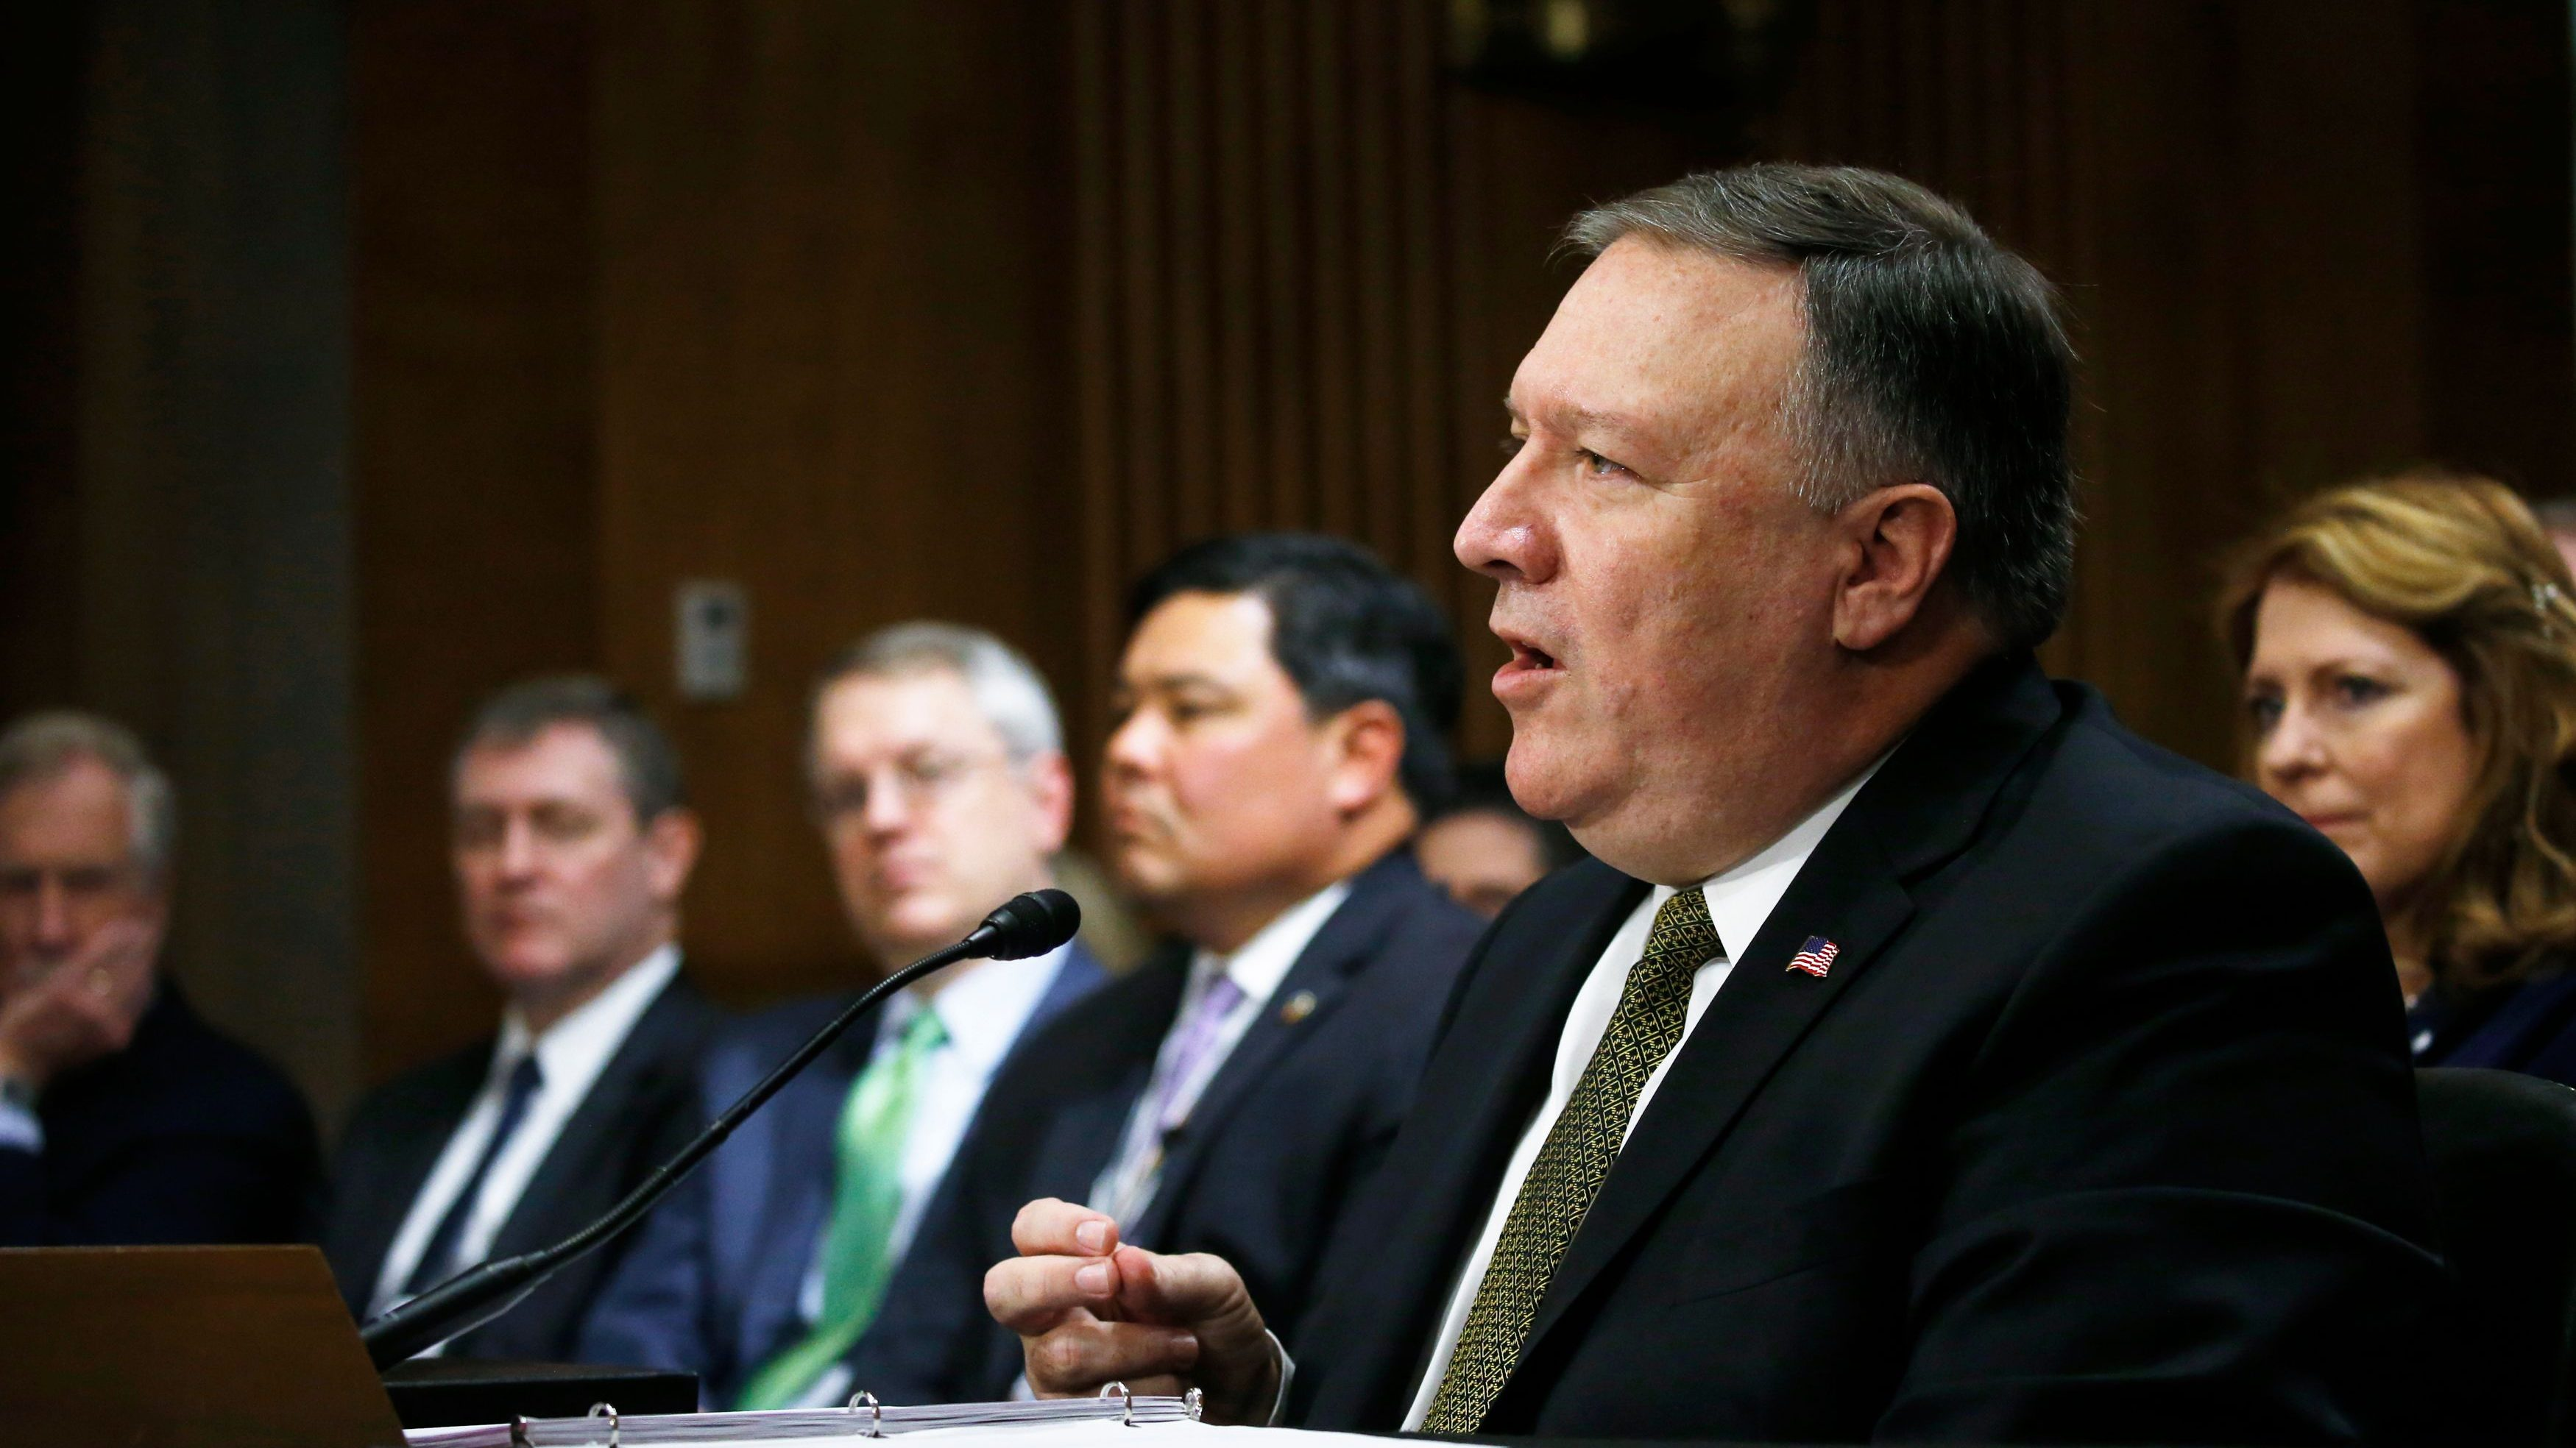 CIA Director Mike Pompeo testifies before a Senate Foreign Relations Committee confirmation hearing on Pompeo's nomination to be secretary of state on Capitol Hill in Washington, U.S., April 12, 2018. REUTERS/Leah Millis - HP1EE4C18LQAK